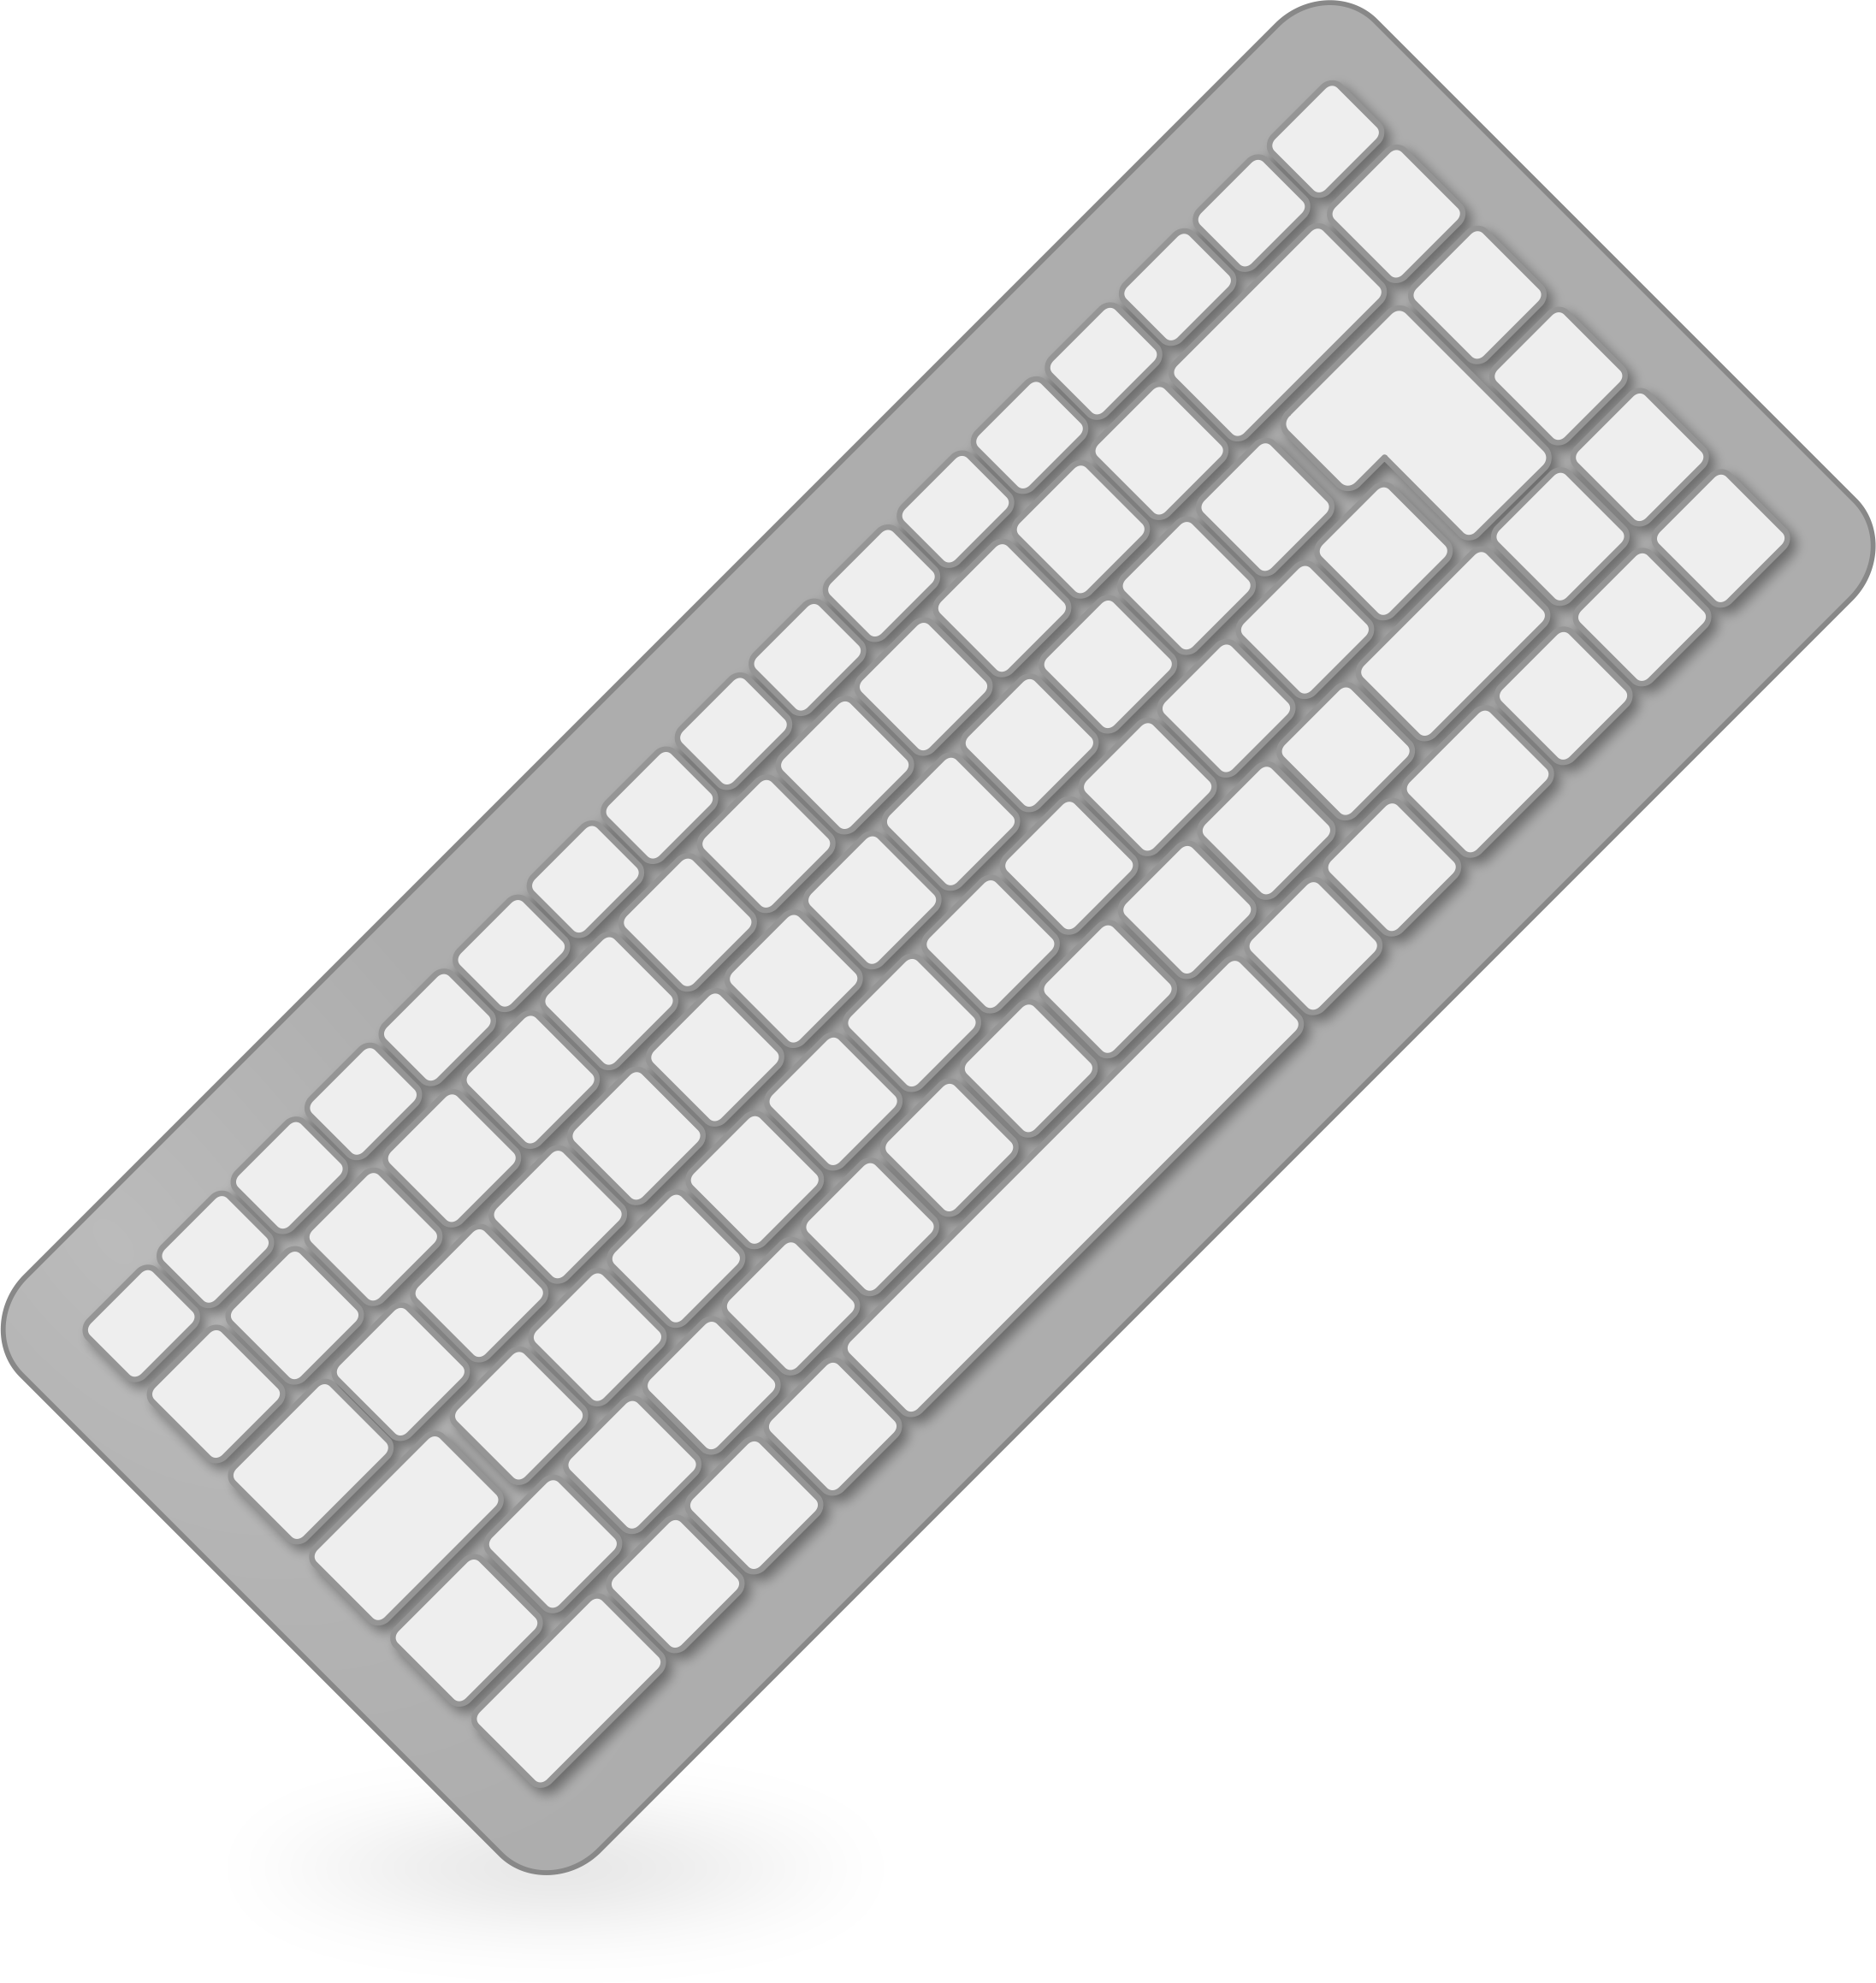 image black and white stock Clipart keyboard. Big image png